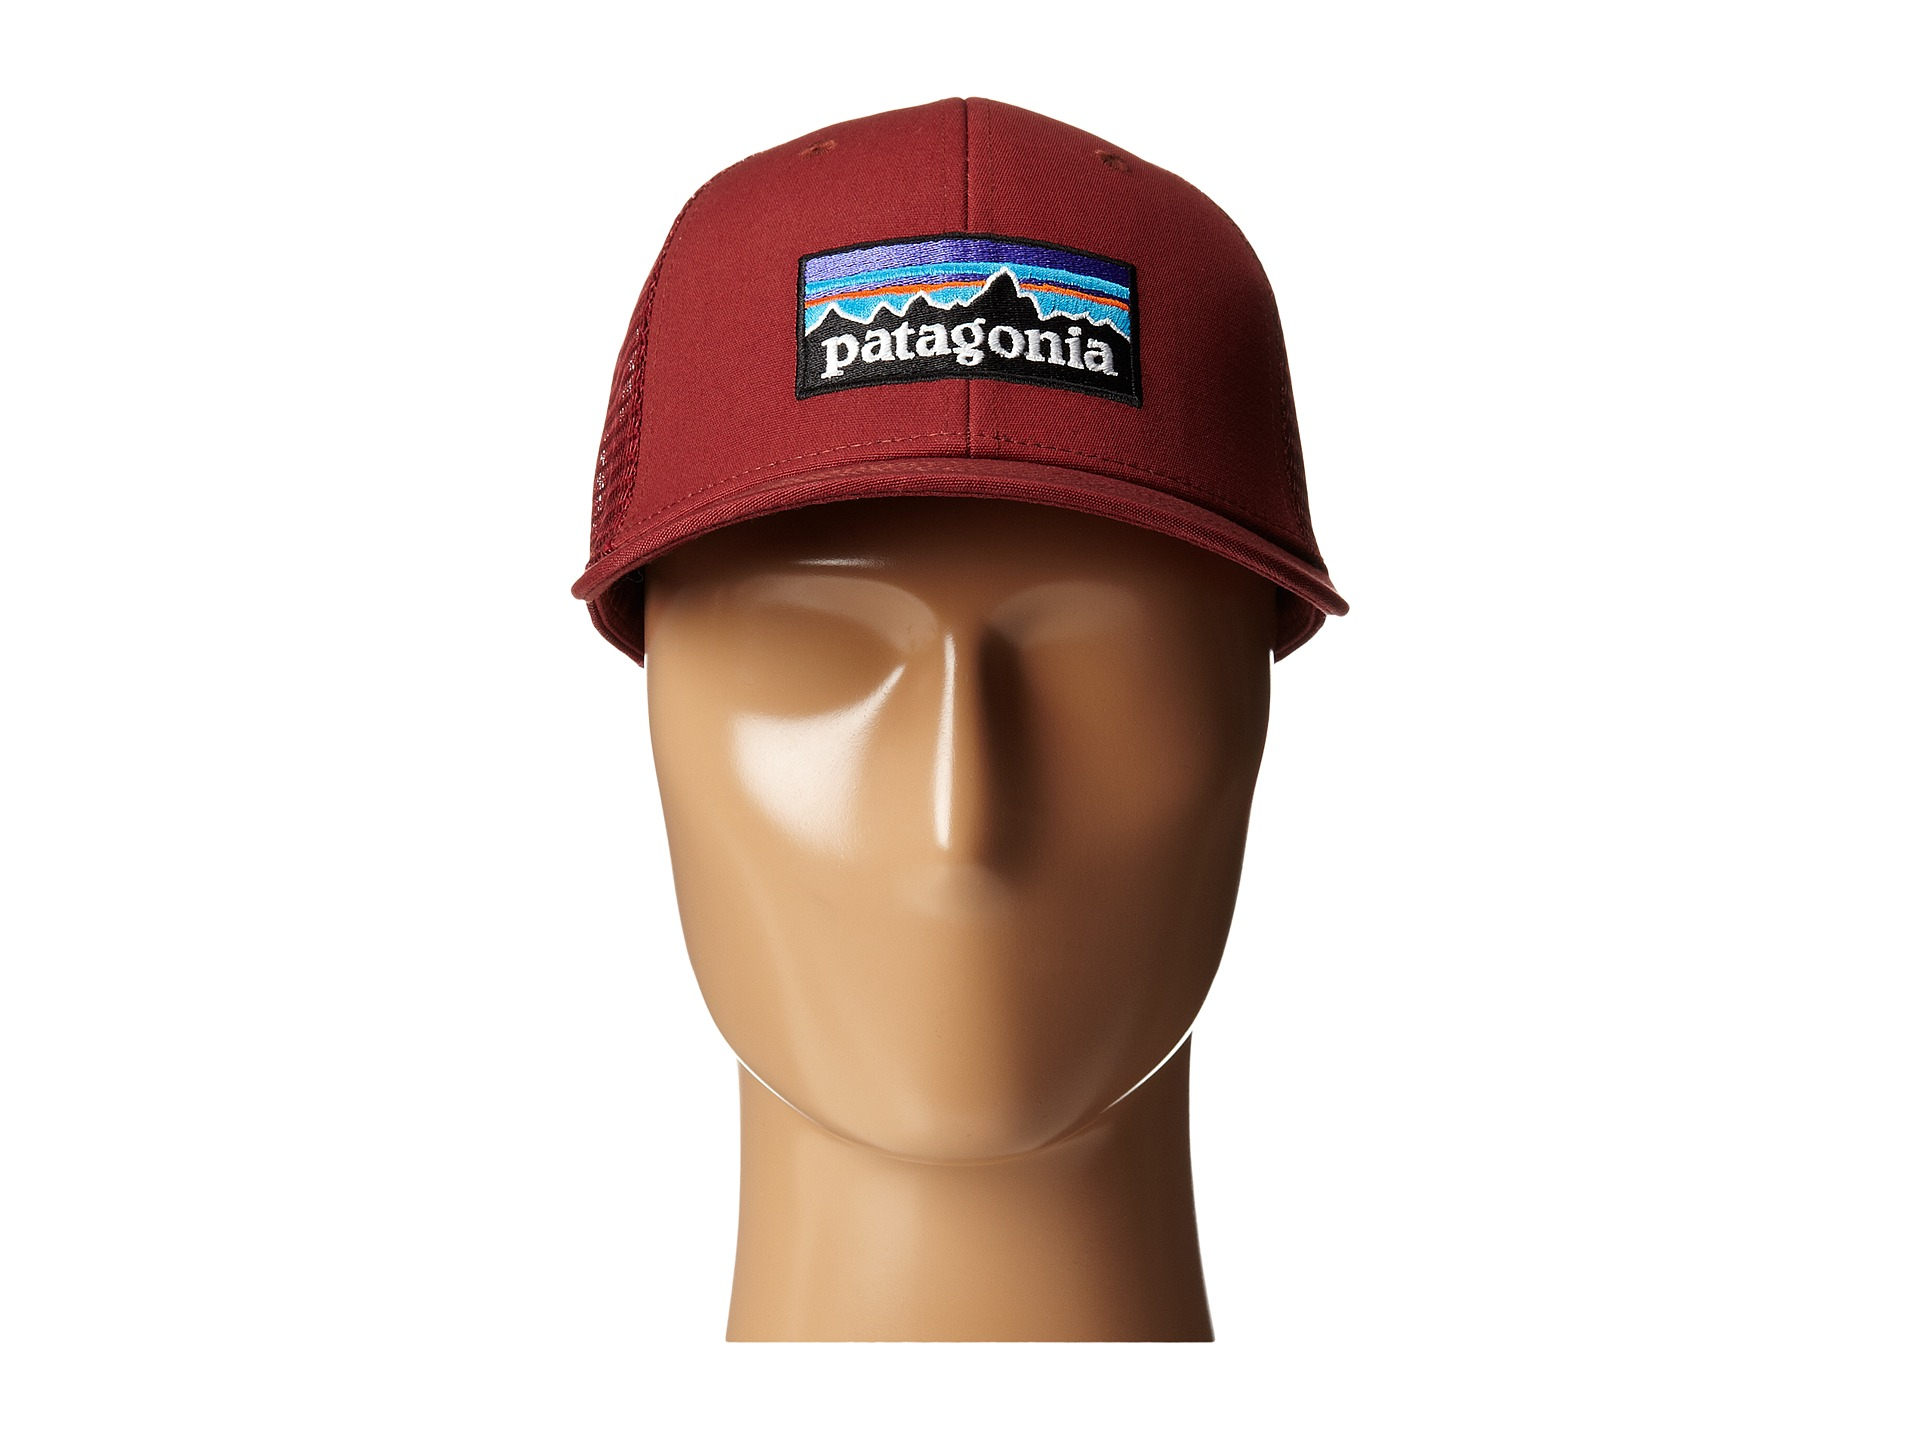 Lyst - Patagonia P6 Trucker Hat in Red for Men 282bdcd9137